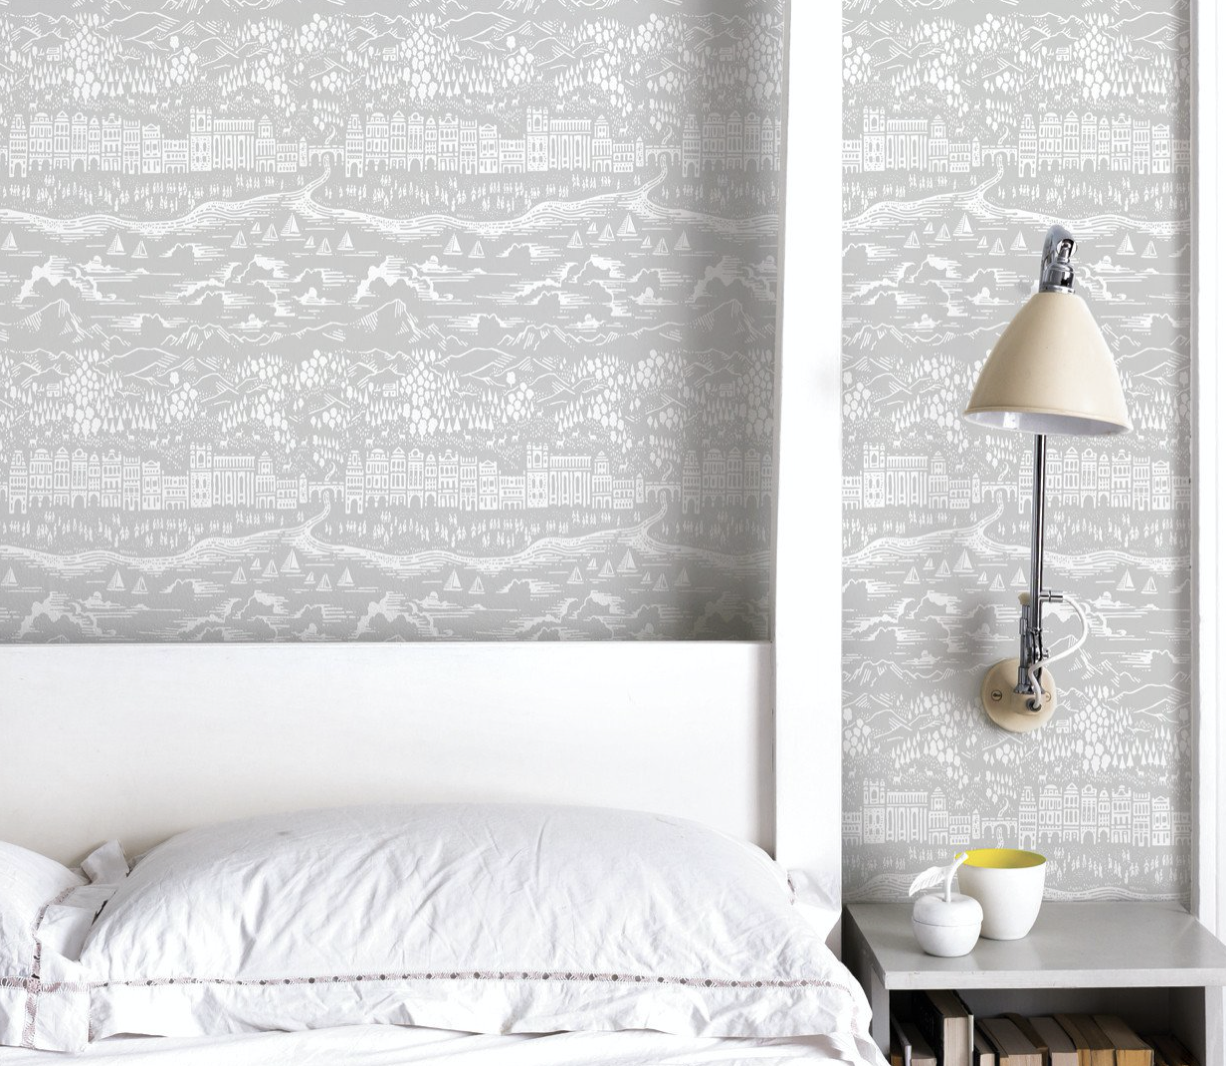 UK company Bold & Noble's wallpapers are printed on FSC paper £38 a roll